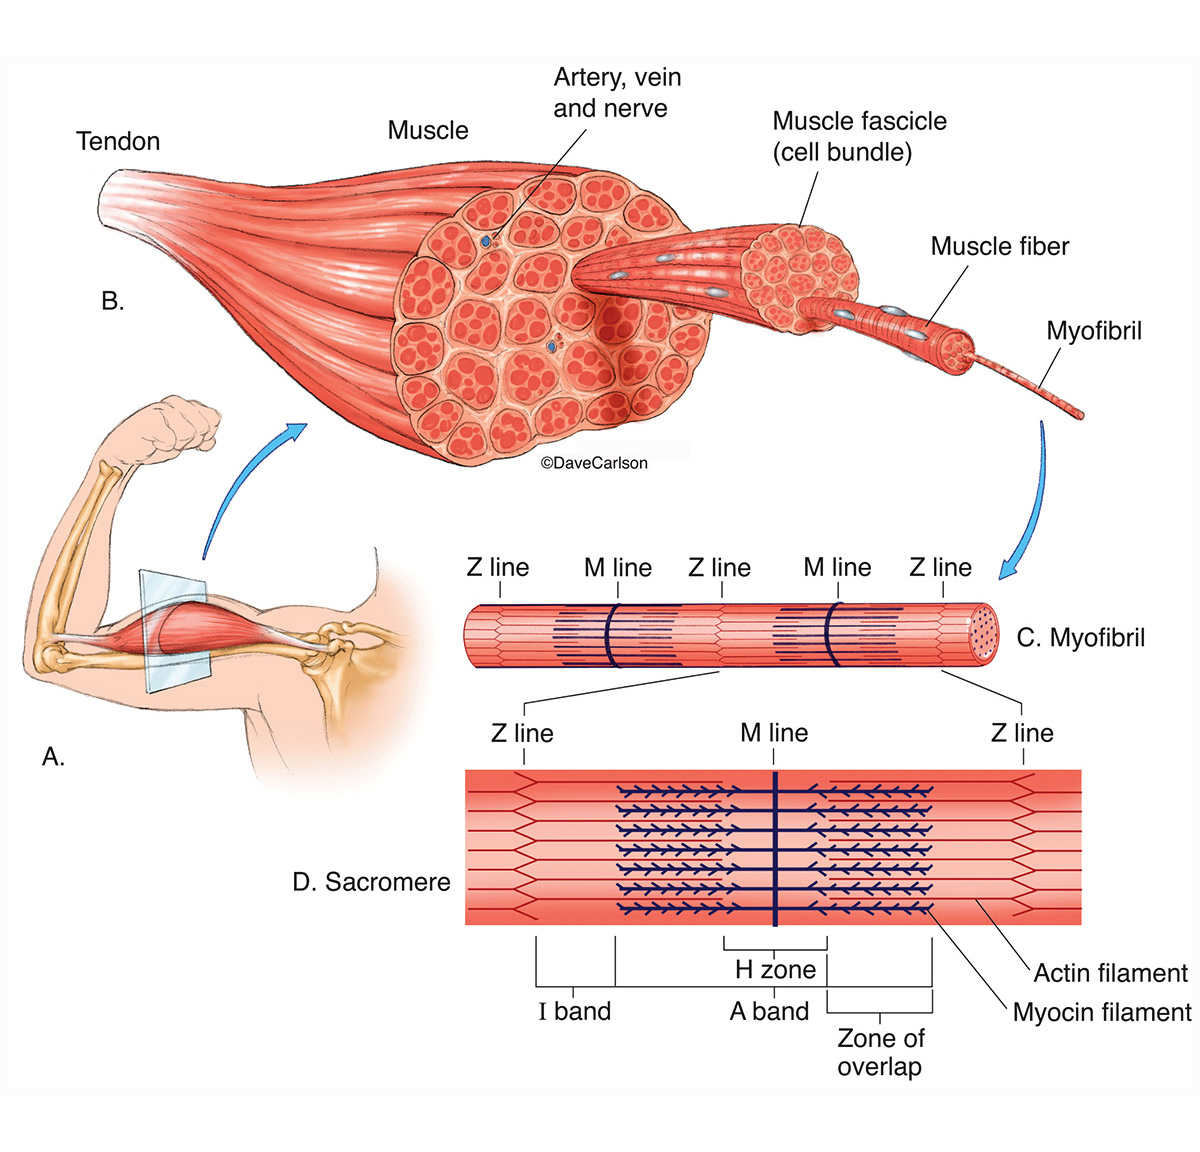 Illustration, macro and micro structure of a muscle, photo